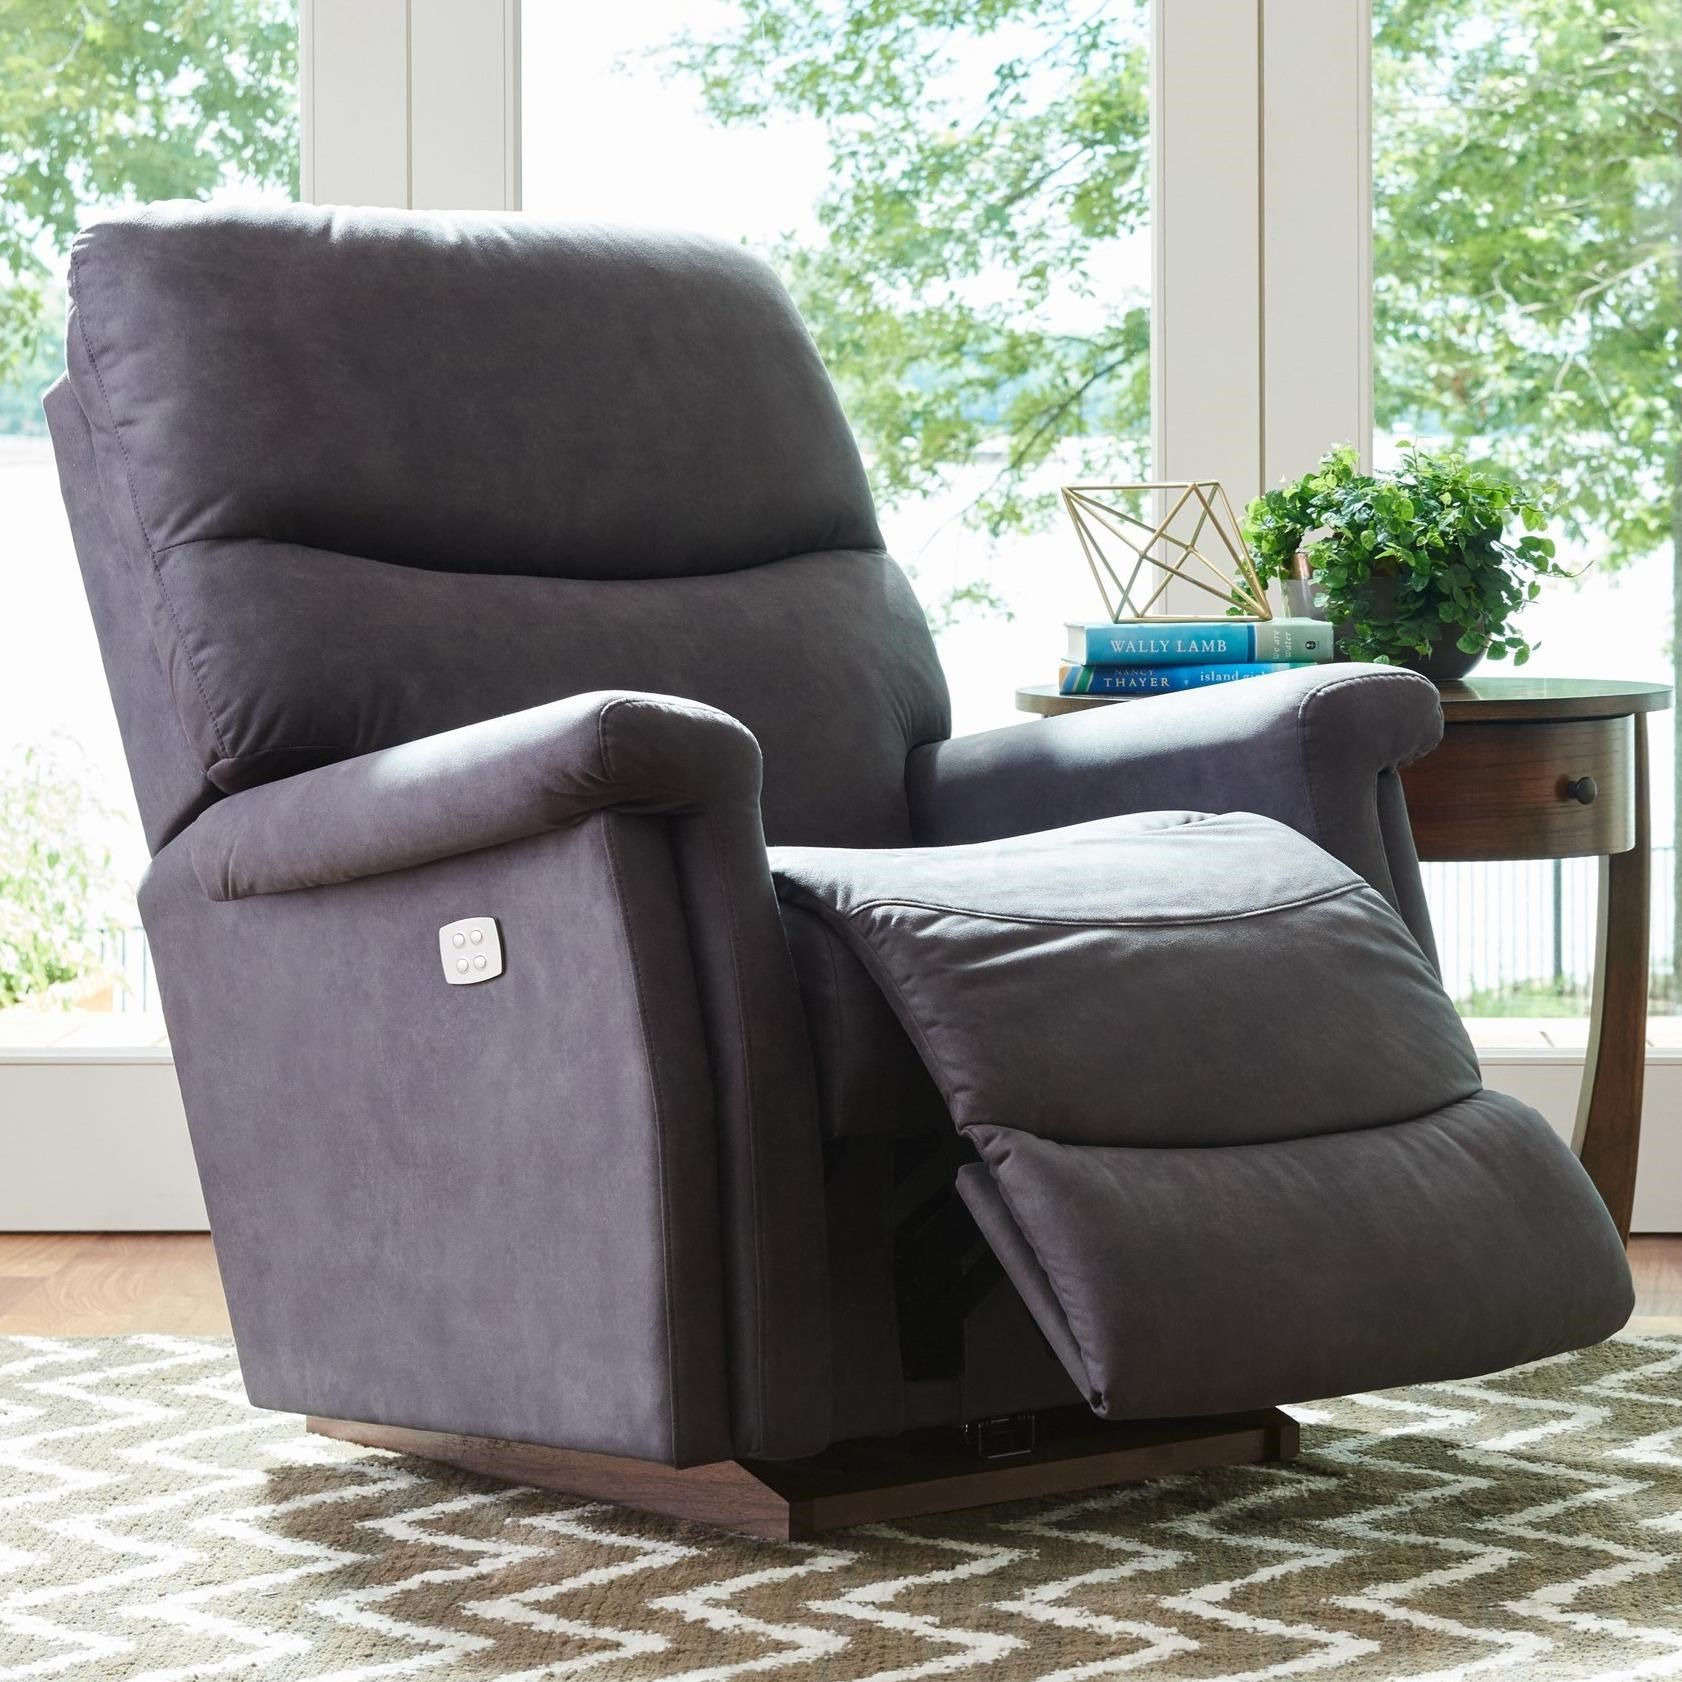 Baylor Lzb Recline Xrw Wall Saver Recliner By La Z Boy